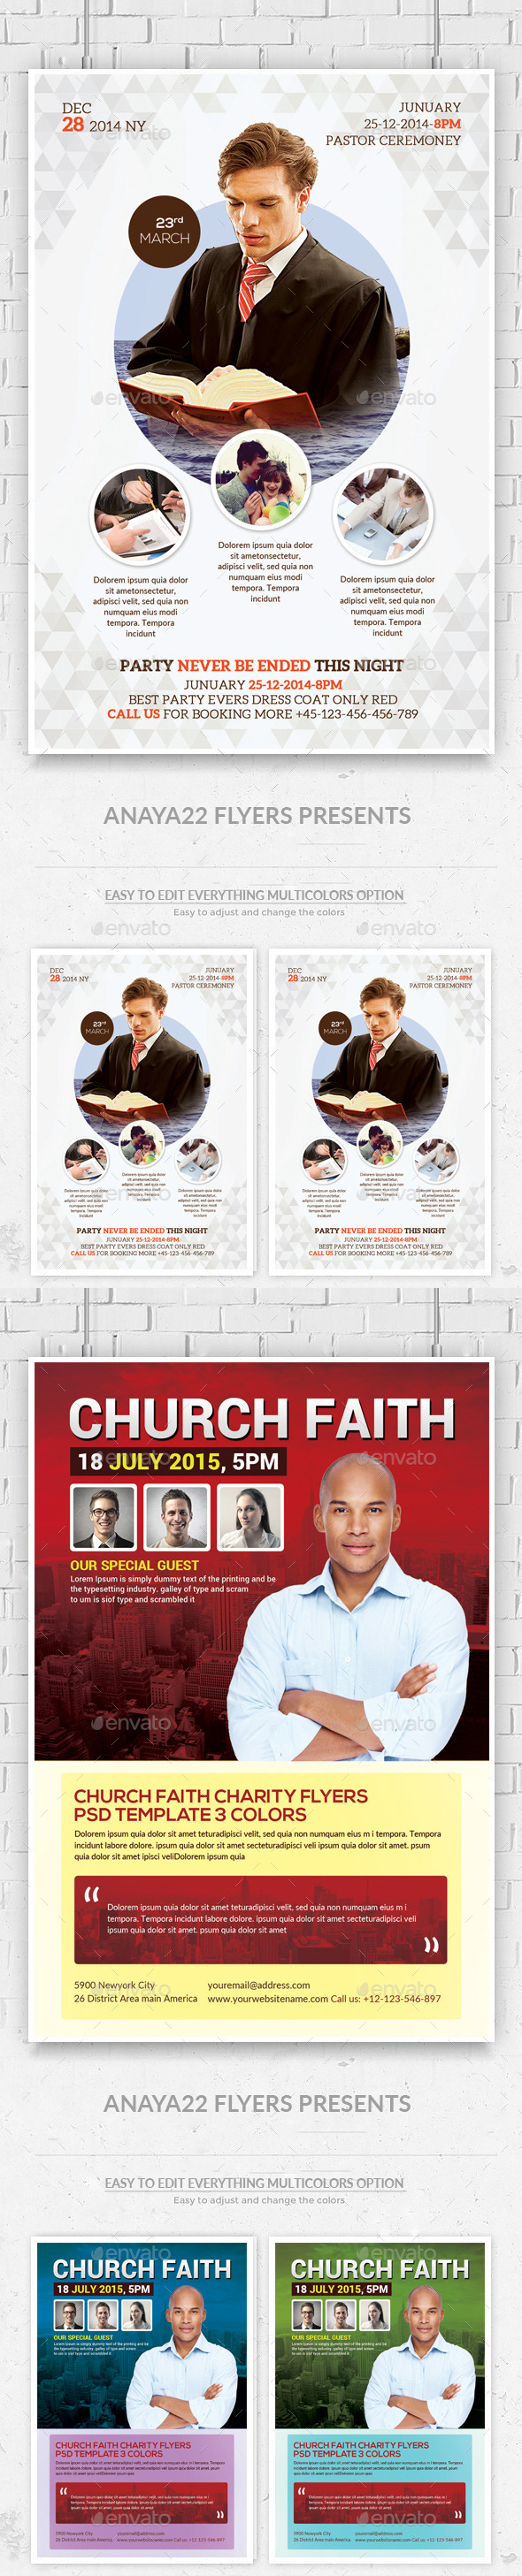 Church Flyers Bundle - Church Flyers